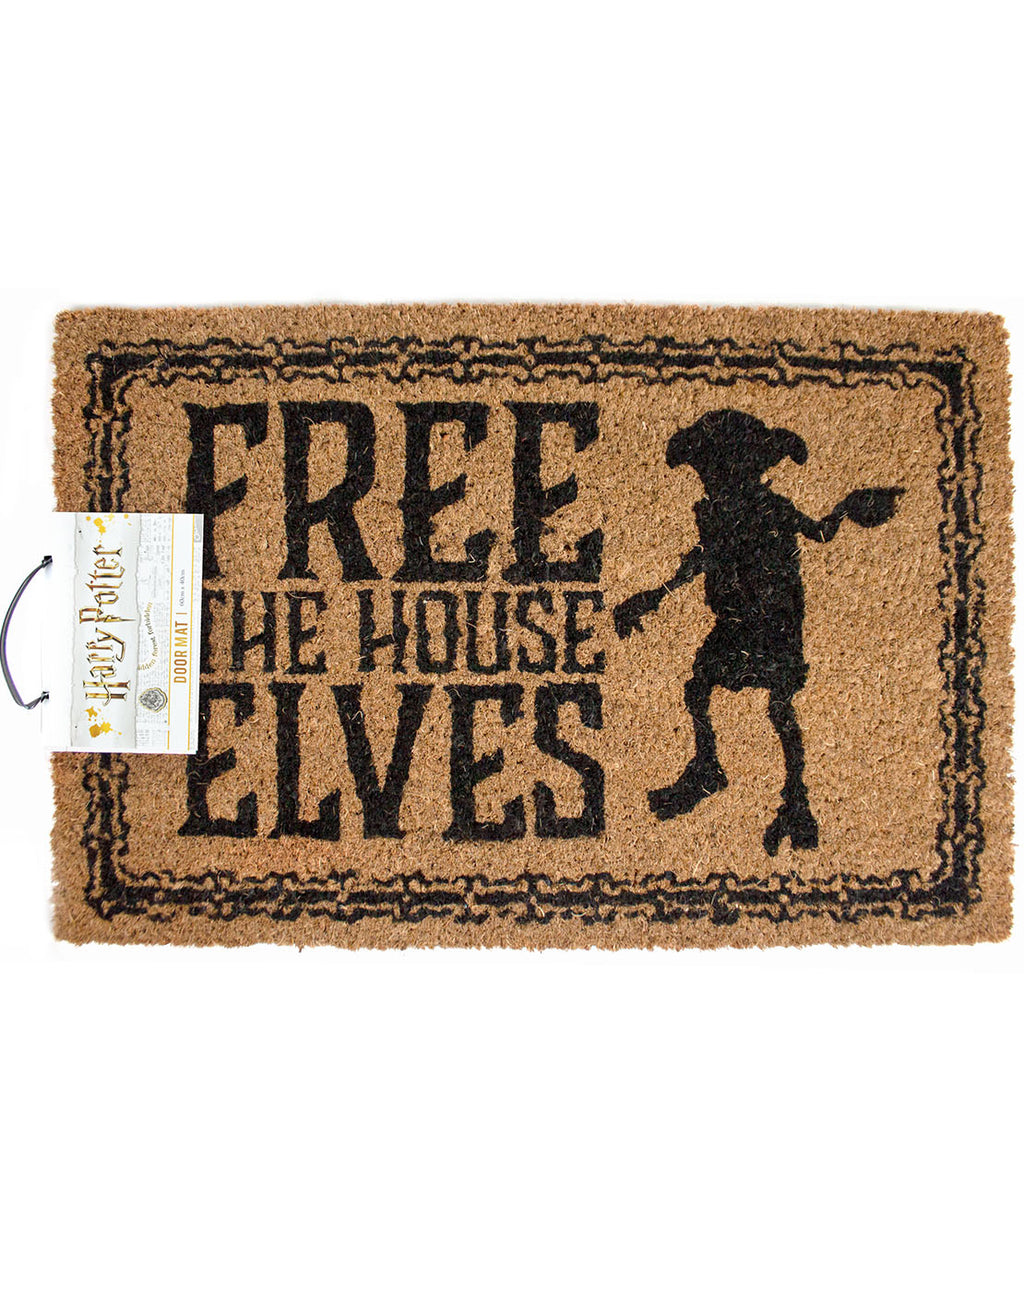 Harry Potter Free The House Elves Door Mat